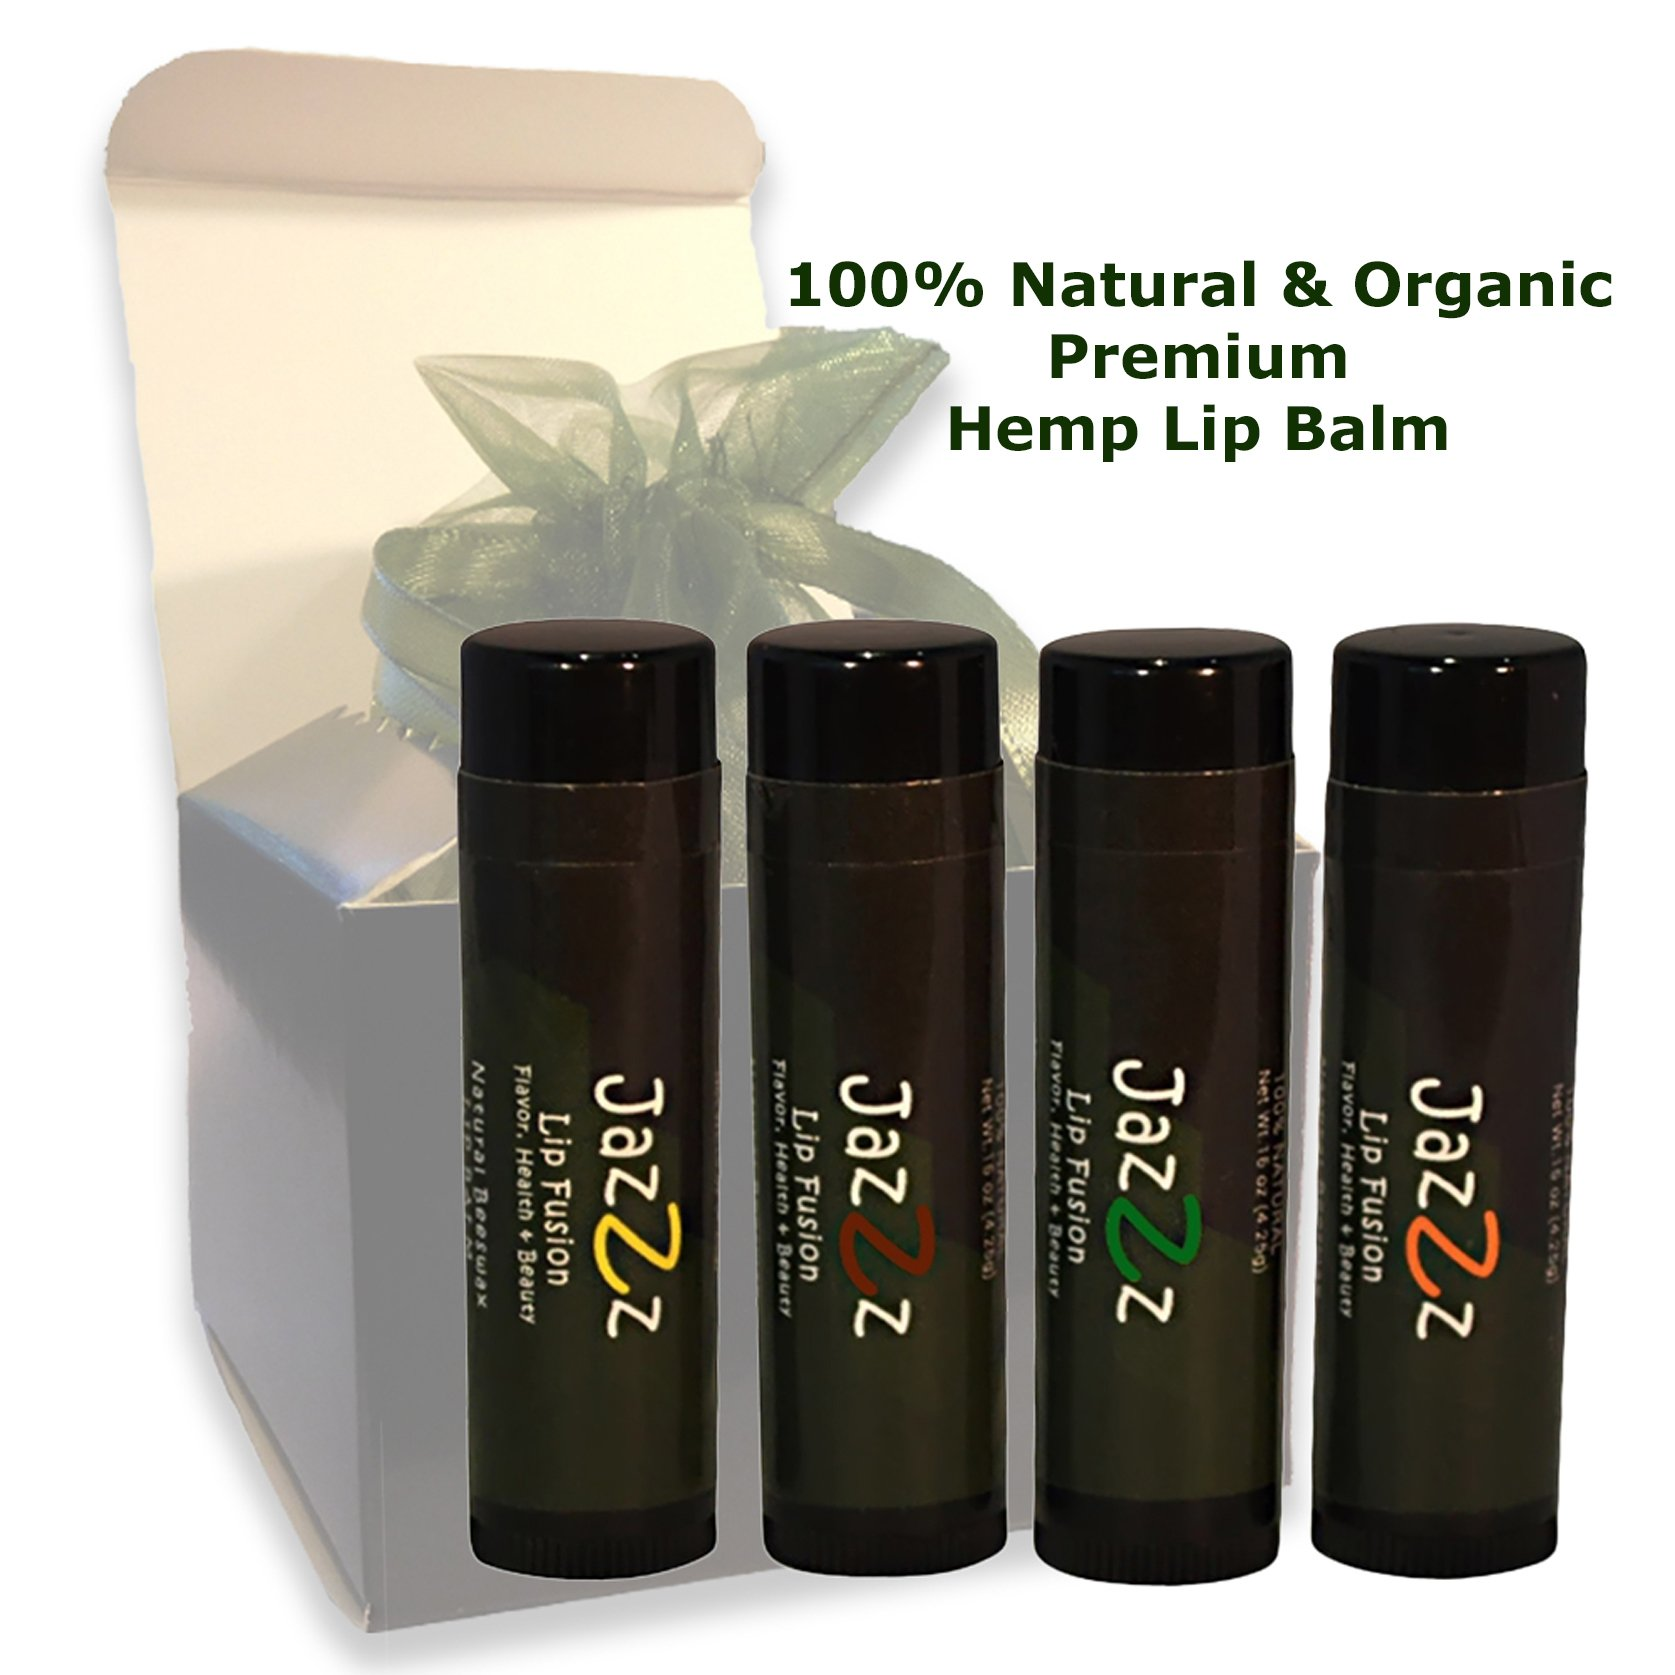 Natural Lip Balm Multi Pack, Unique Gift Idea; Lip Care Treatment Gift Set for Women and Men. 4 Exotically Flavored Chapsticks; Organic Hemp Seed Oil Lip Conditioner Repairs Chapped, Dry,Cracked Lips